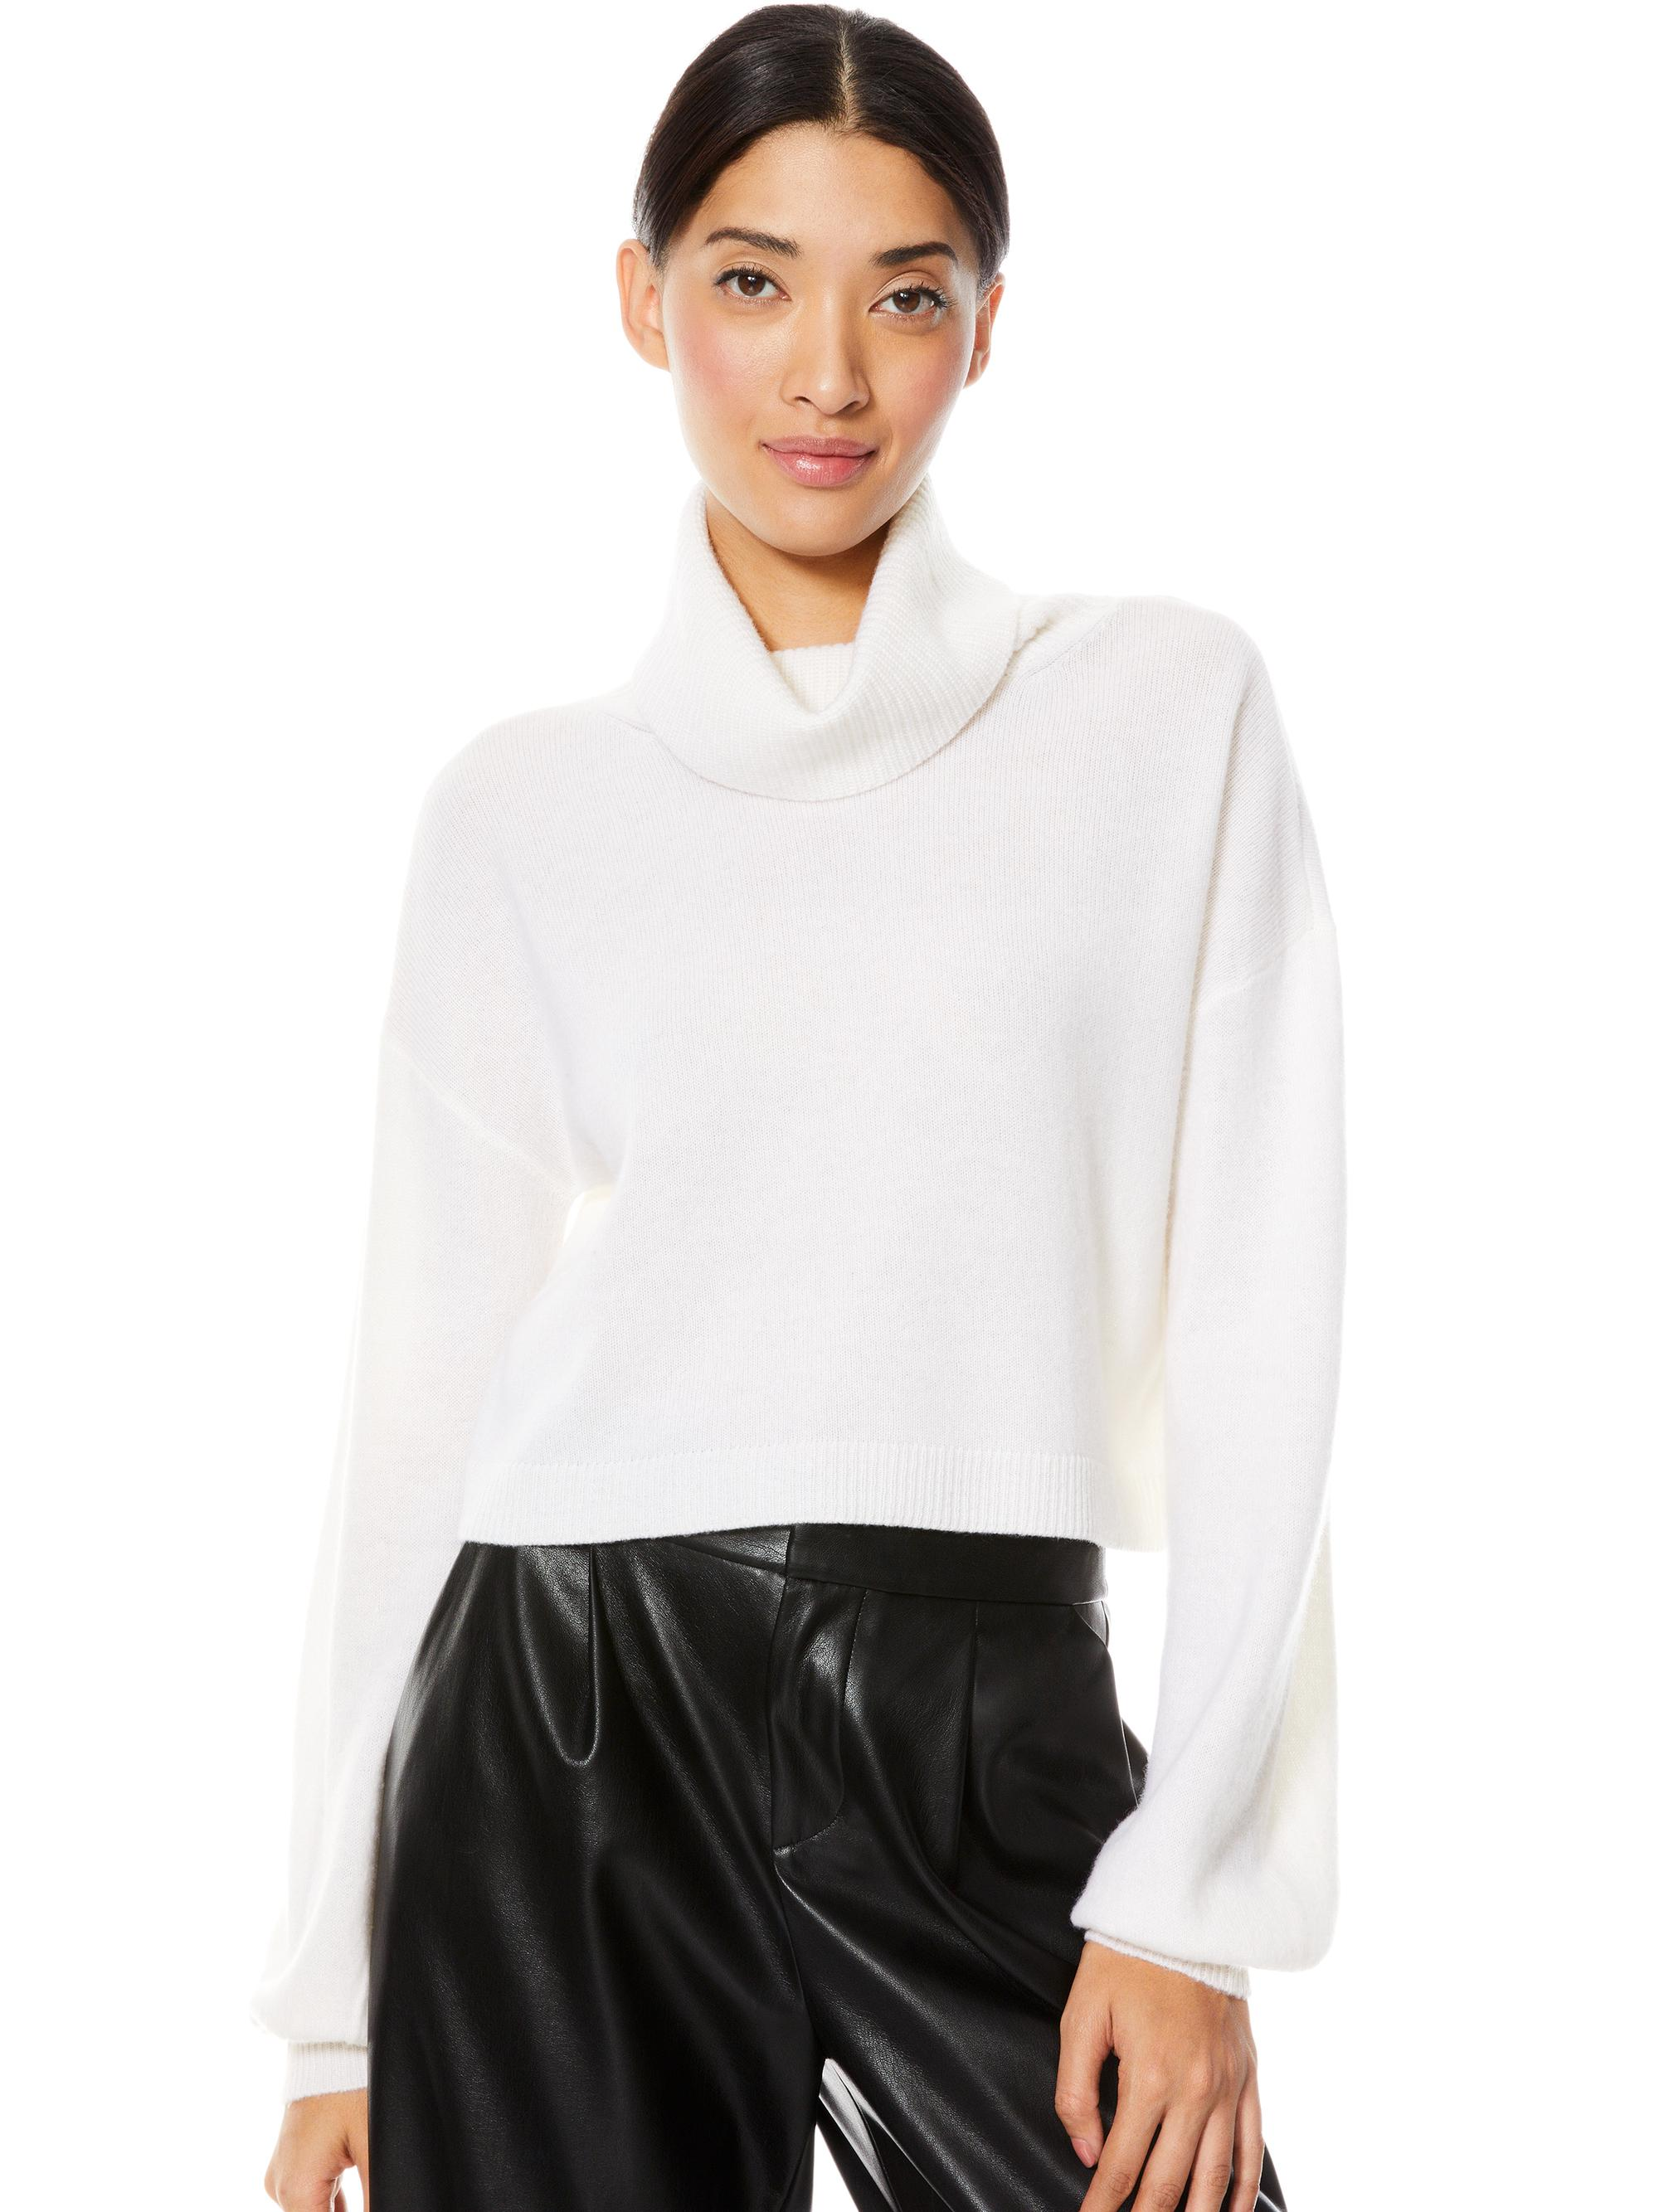 ANSLEY TURTLENECK CROPPED SWEATER